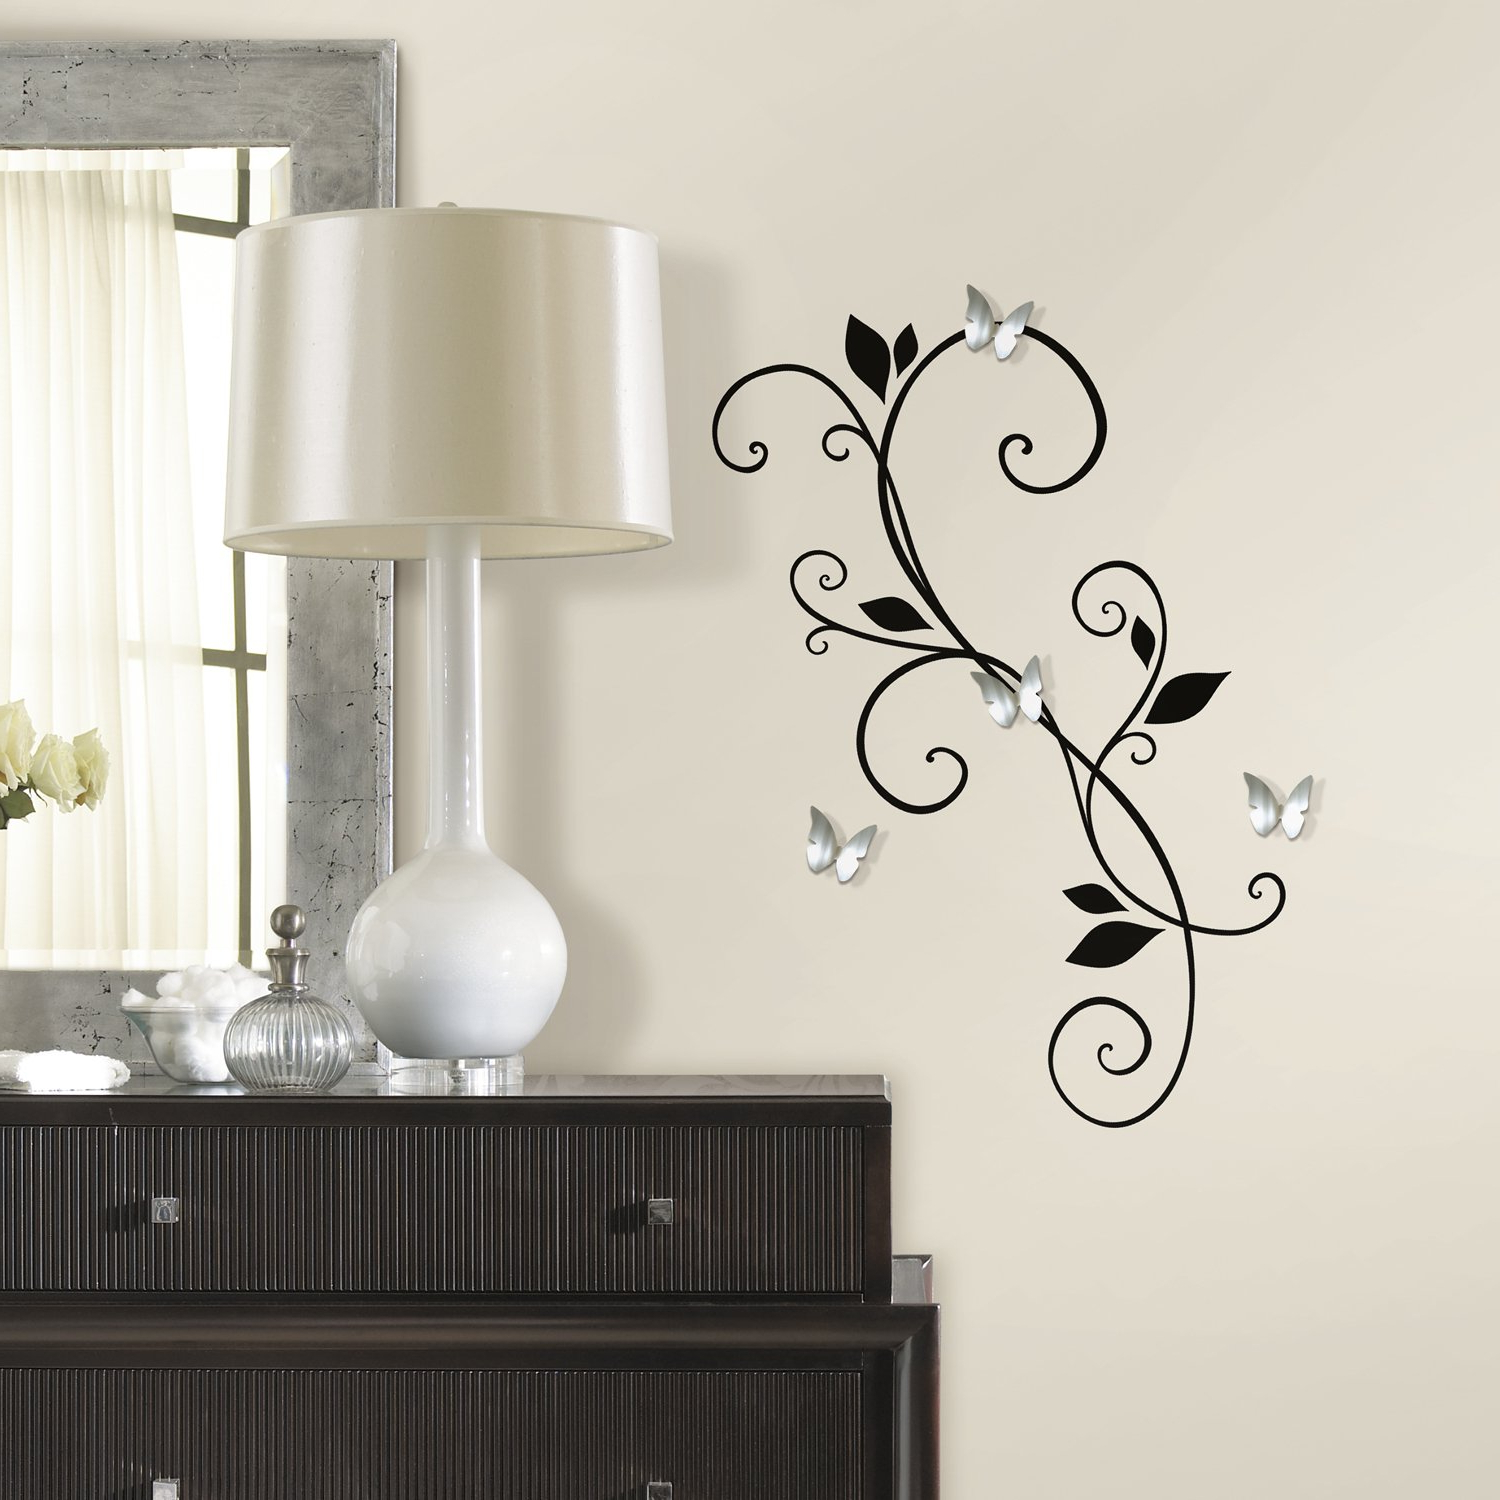 Stick On Wall Mirrors Within Fashionable Roommates Scroll Sconce Peel And Stick Wall Decals With Bendable Butterfly Mirrors (View 12 of 20)